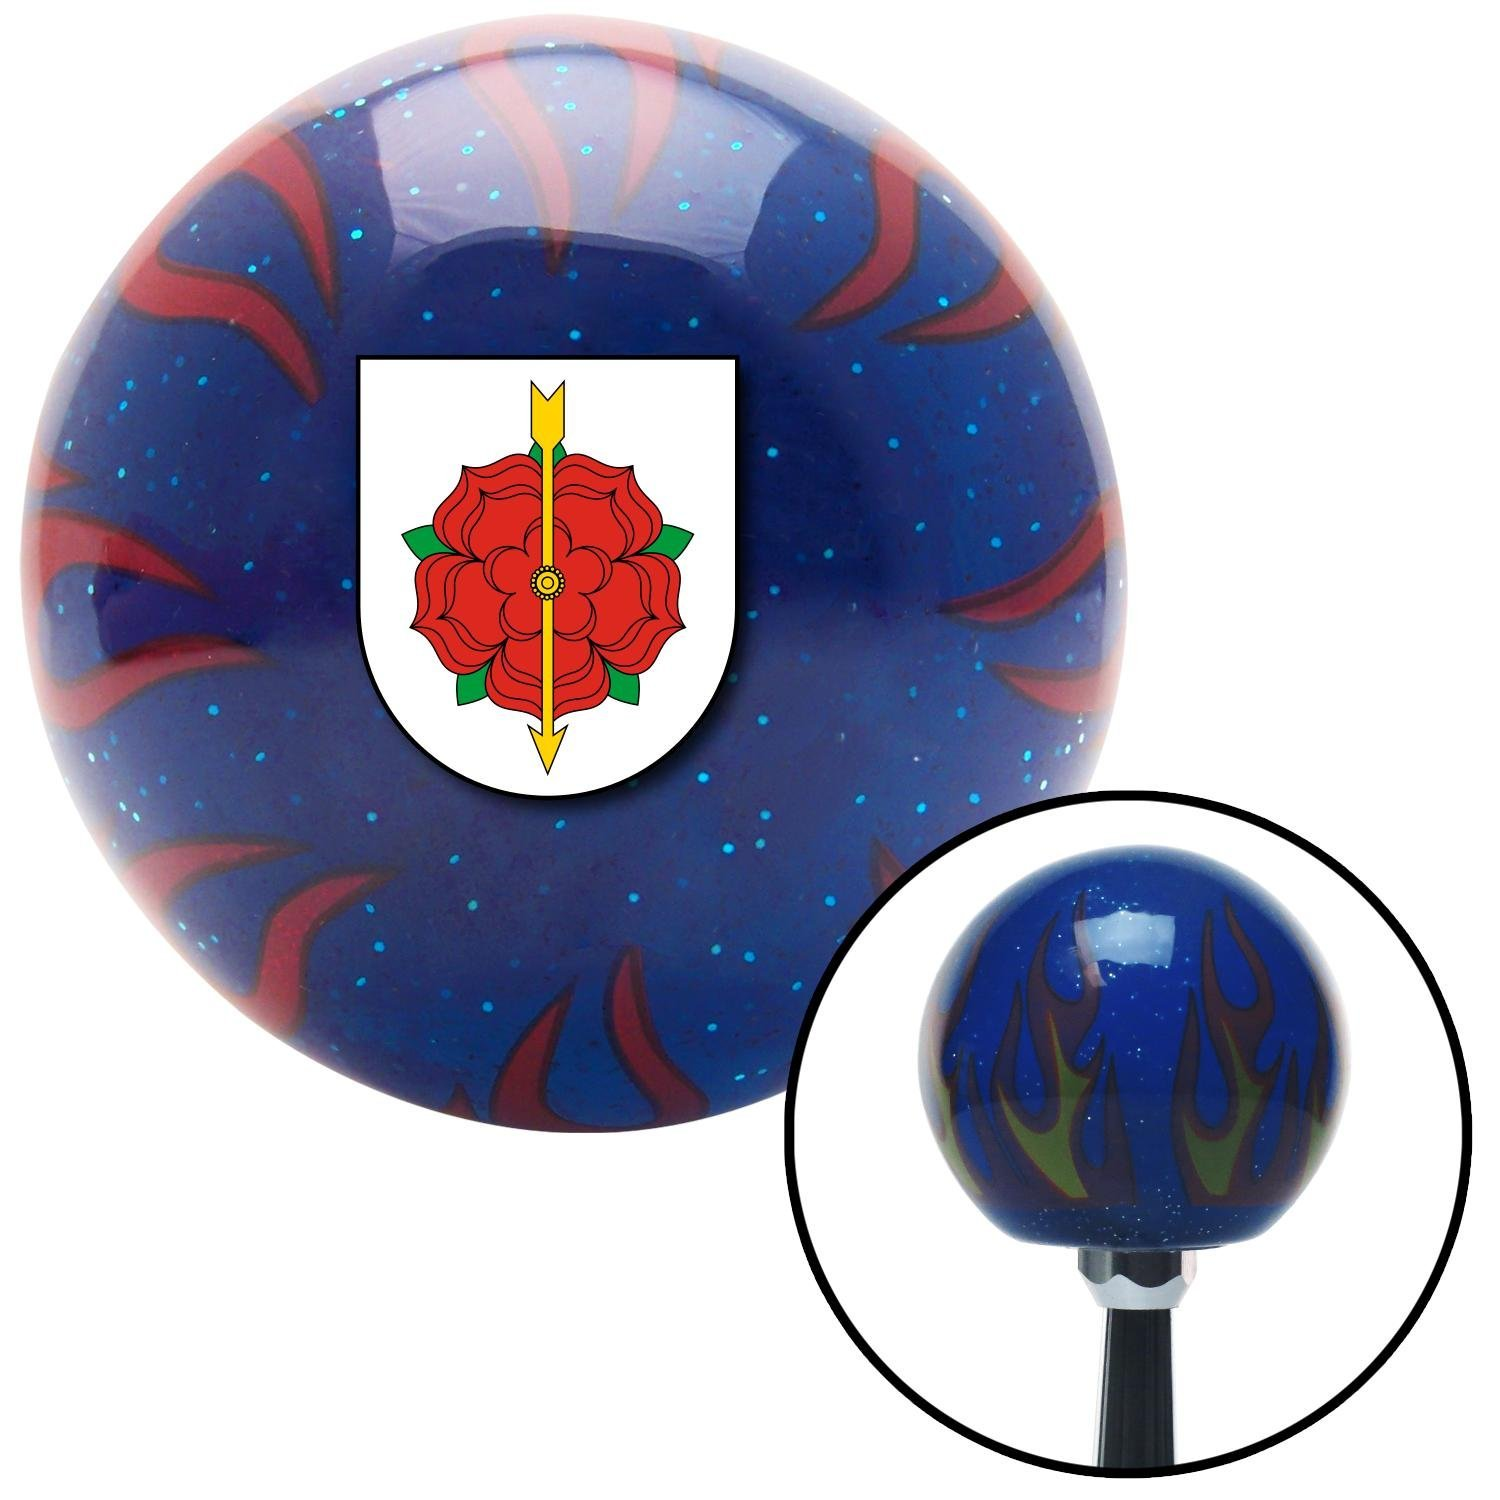 American Shifter 251768 Blue Flame Metal Flake Shift Knob with M16 x 1.5 Insert Hungarian Slovakian Coat of Arms